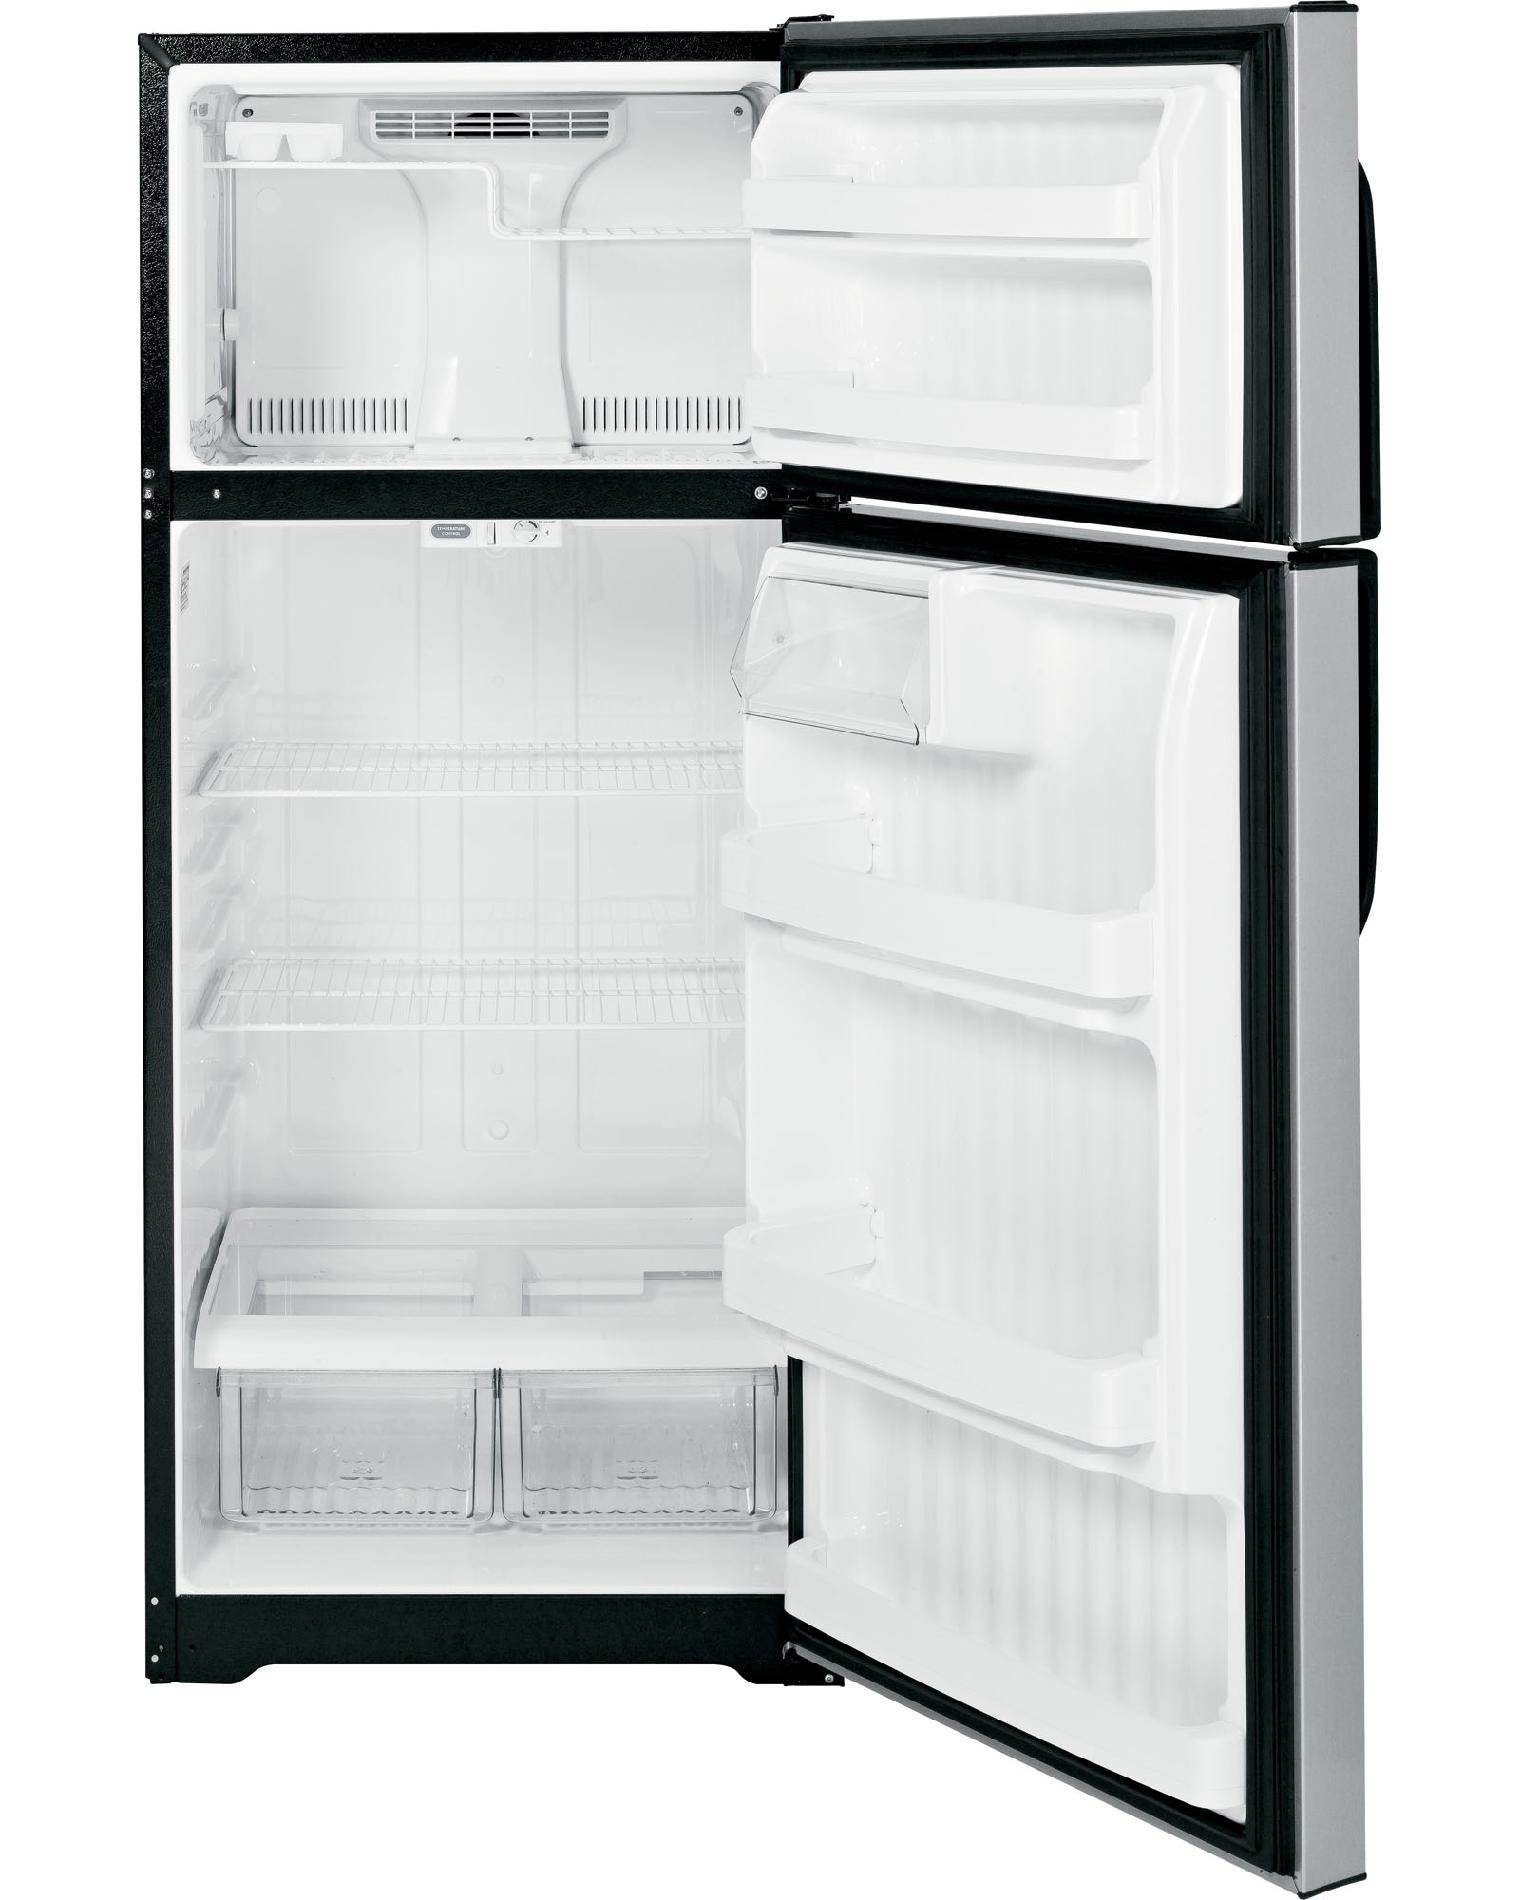 GE 18.1 cu. ft. Top-Freezer Refrigerator - Metallic